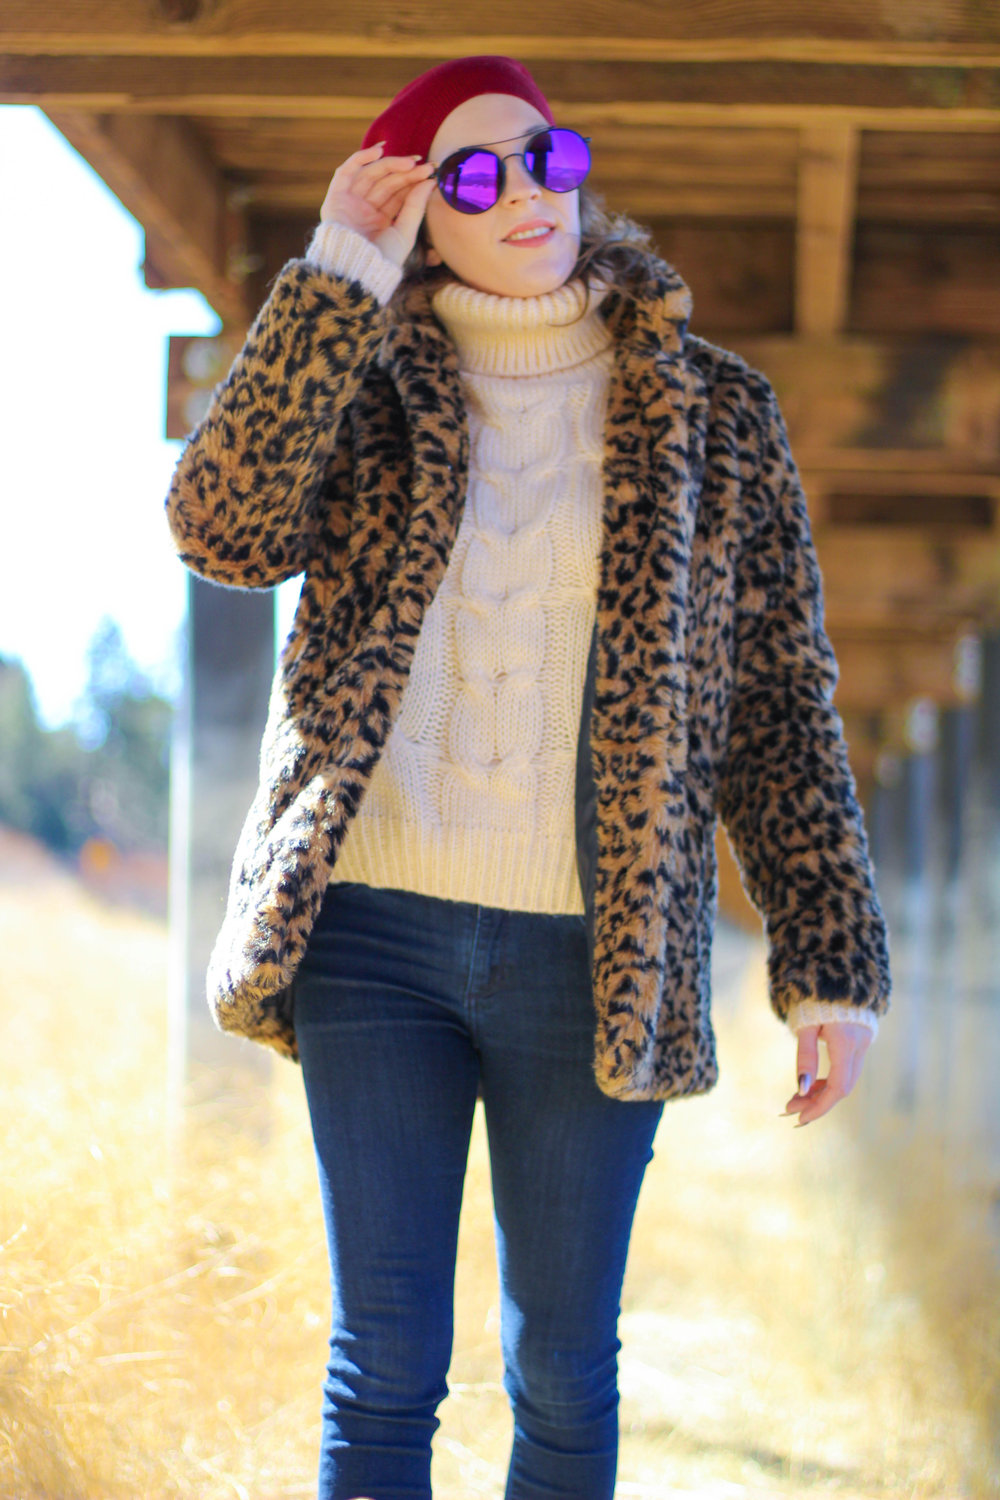 Jacket:   Shein   // Sweater:   Shein   // Jeans:   BR   // Boots: similar   here   // Hat:   Shein   // Sunnies: similar   here